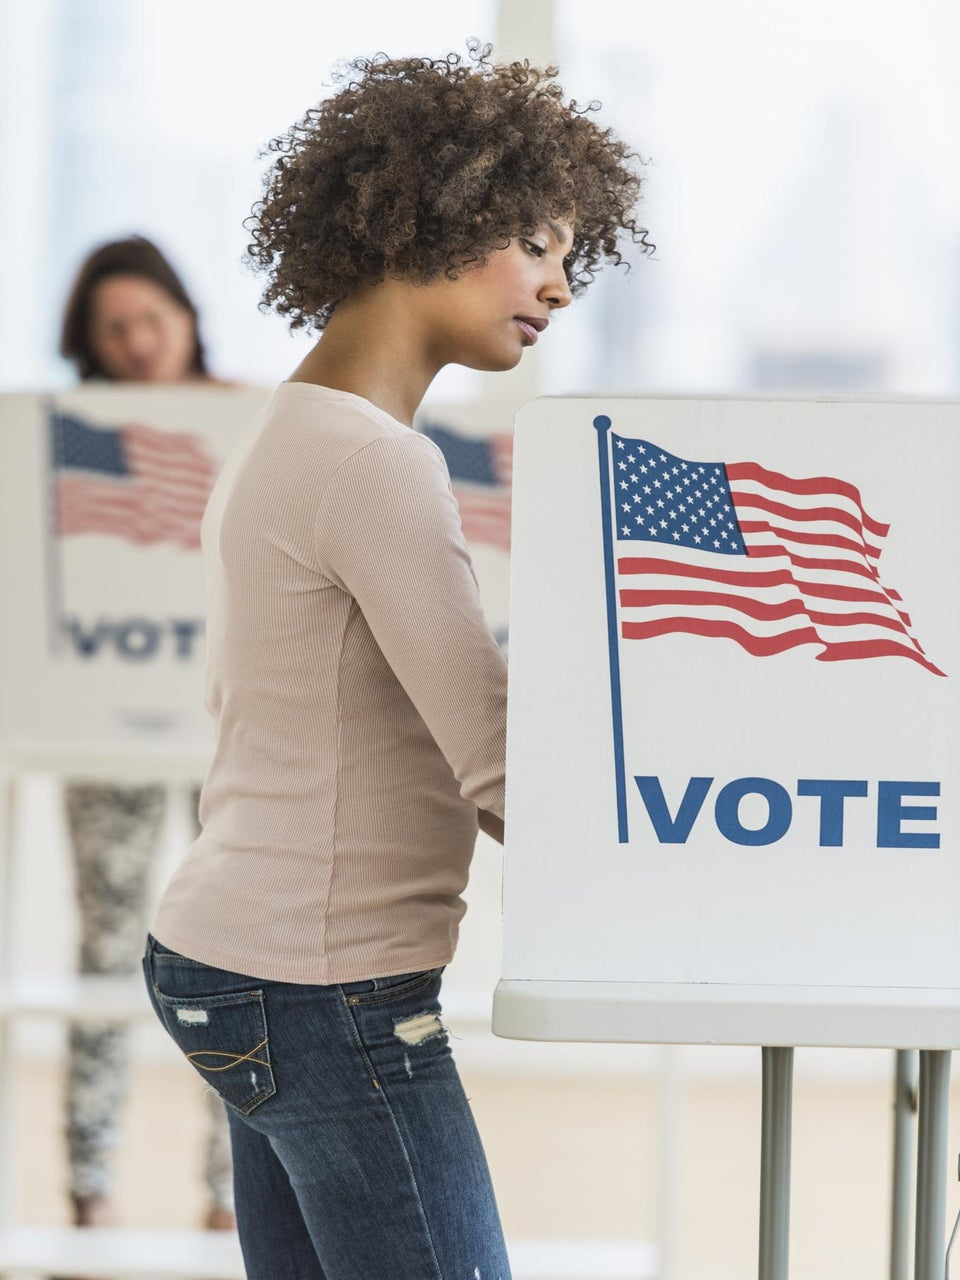 """ESSENCE and Black Women's Roundtable Release Survey, """"The Power of the Sister Vote"""""""